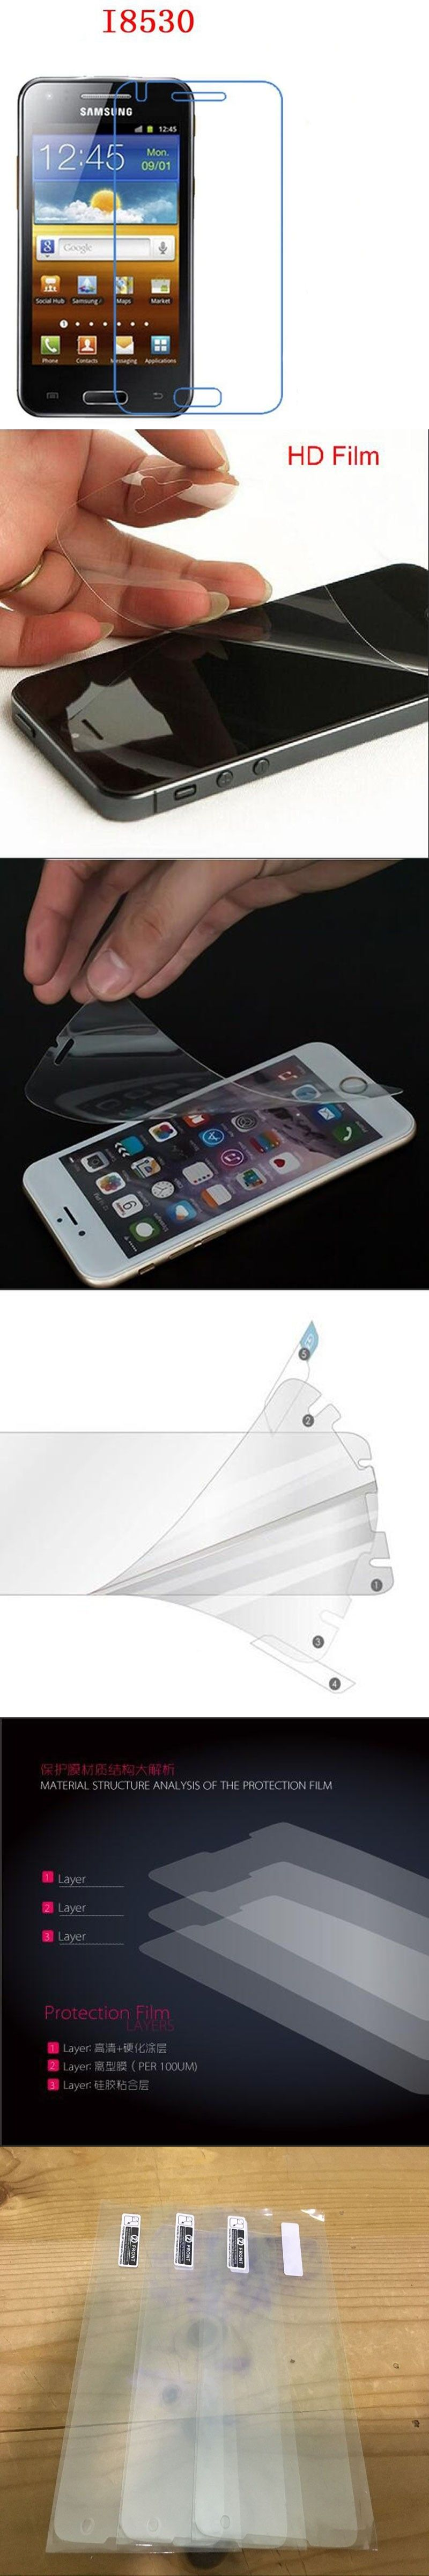 3 Pcs Hd Pe Soft Phone Film For Samsung I8530 Galaxy Beam Remax Aluminum Metal Button Bumper Protector Case Iphone 5 5s Touch Screen